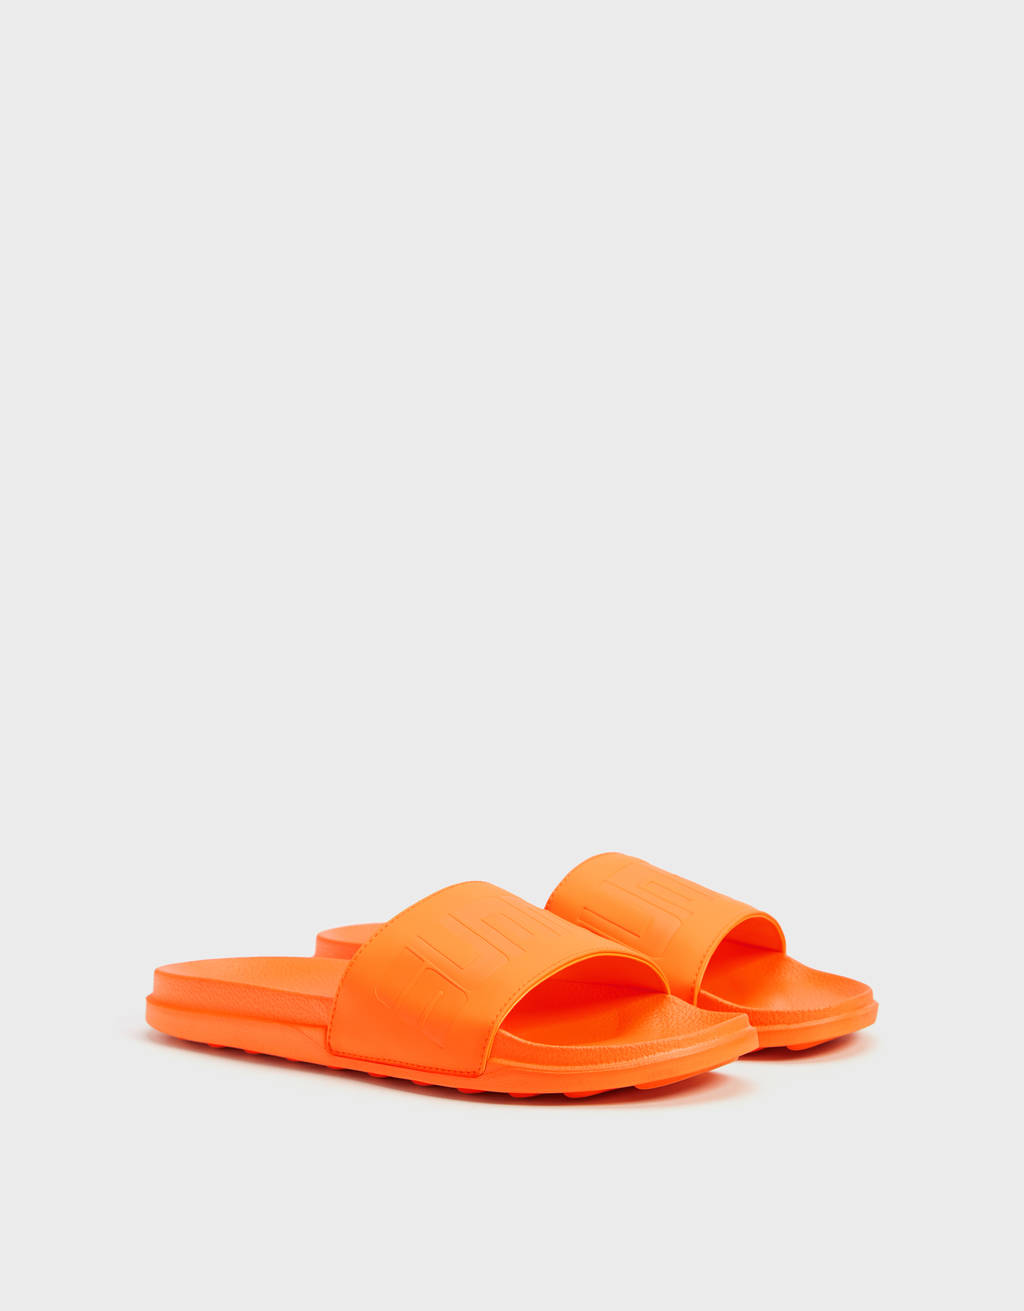 Sandales de piscine inscription fluo homme